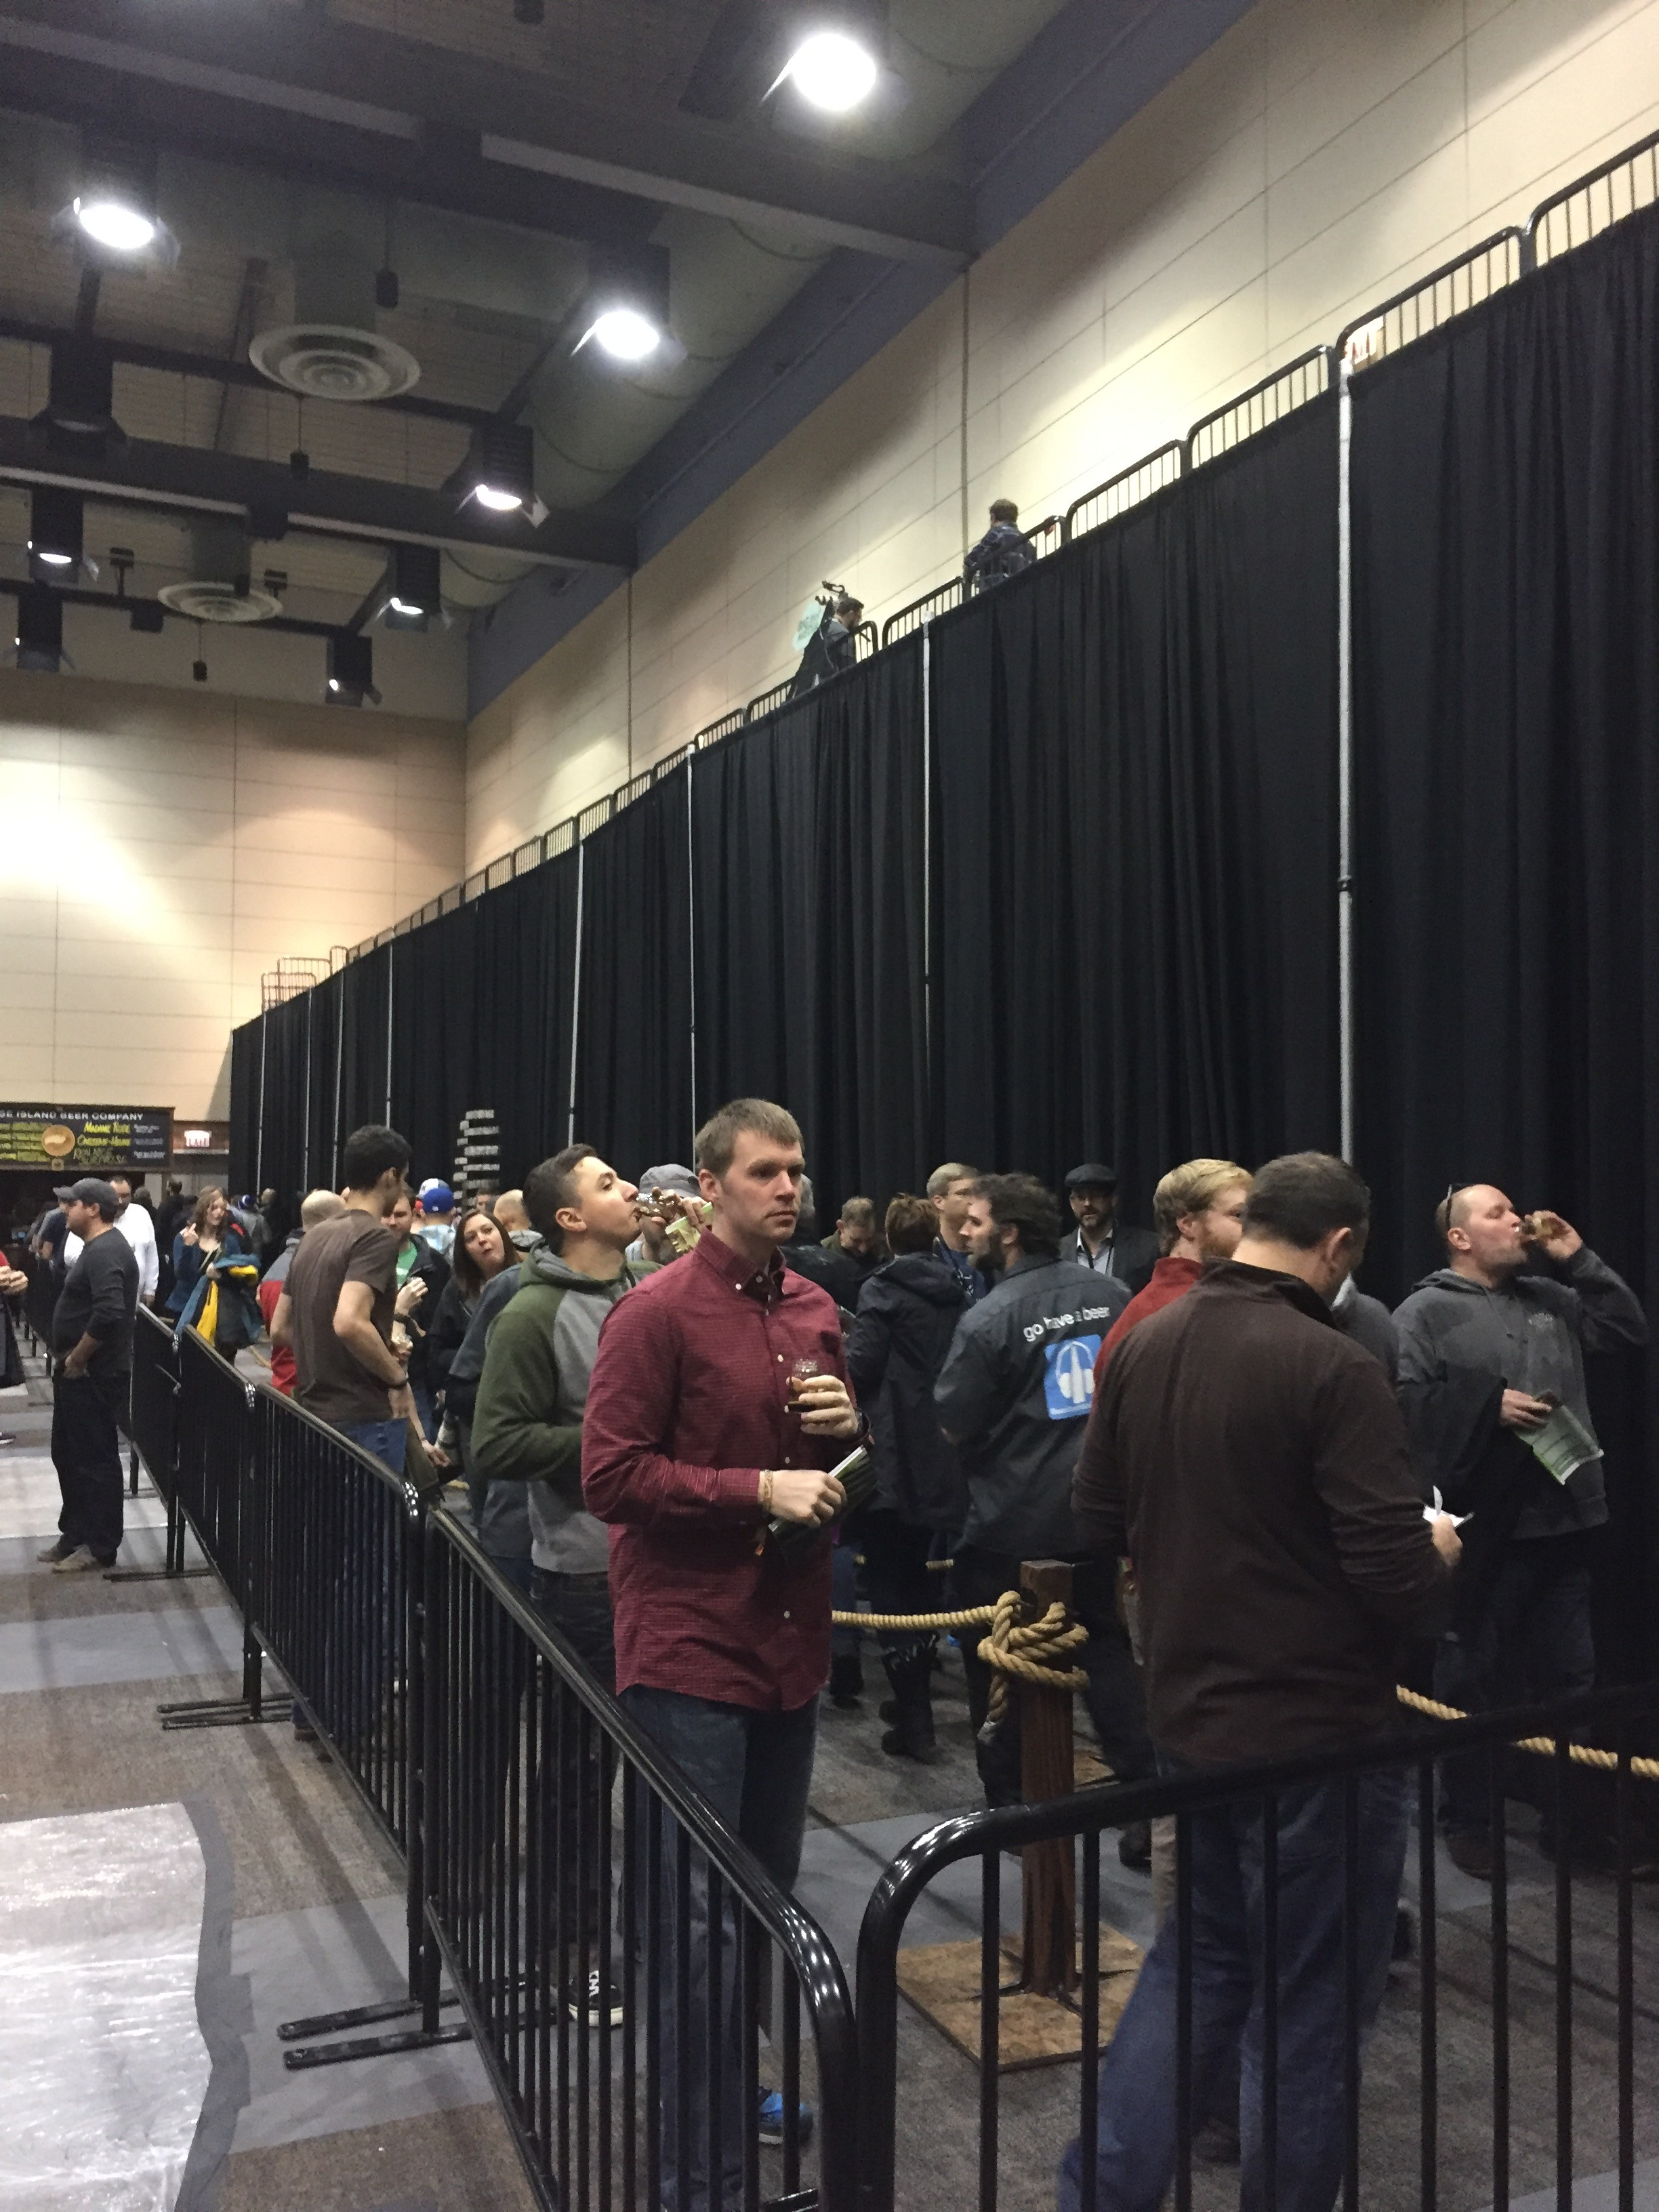 The line for BCBS Rare formed quickly